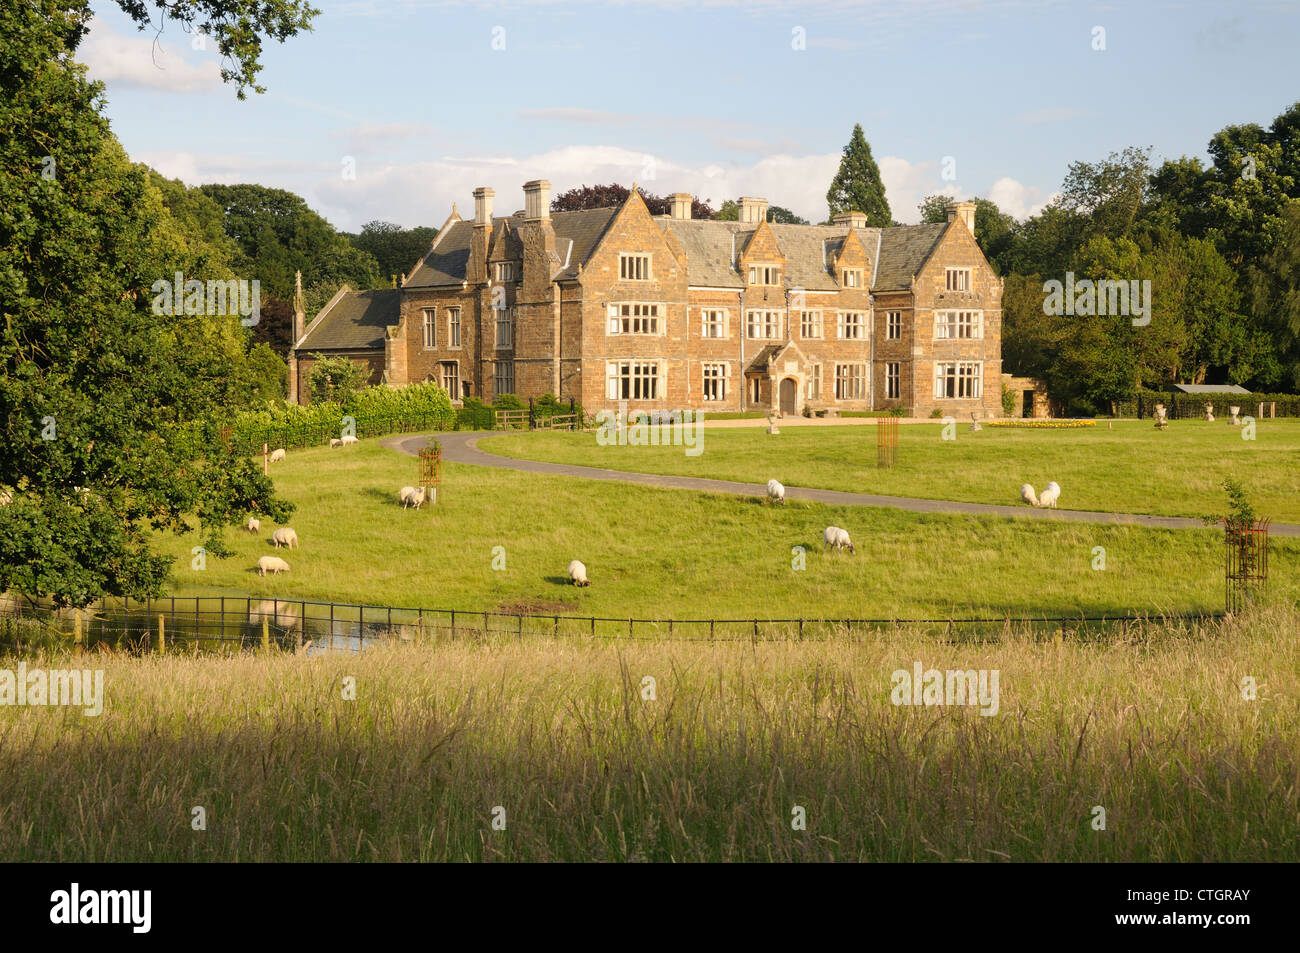 Launde Abbey - incorporating the monastic remains of Launde Priory - in Launde, Leicestershire, England - Stock Image